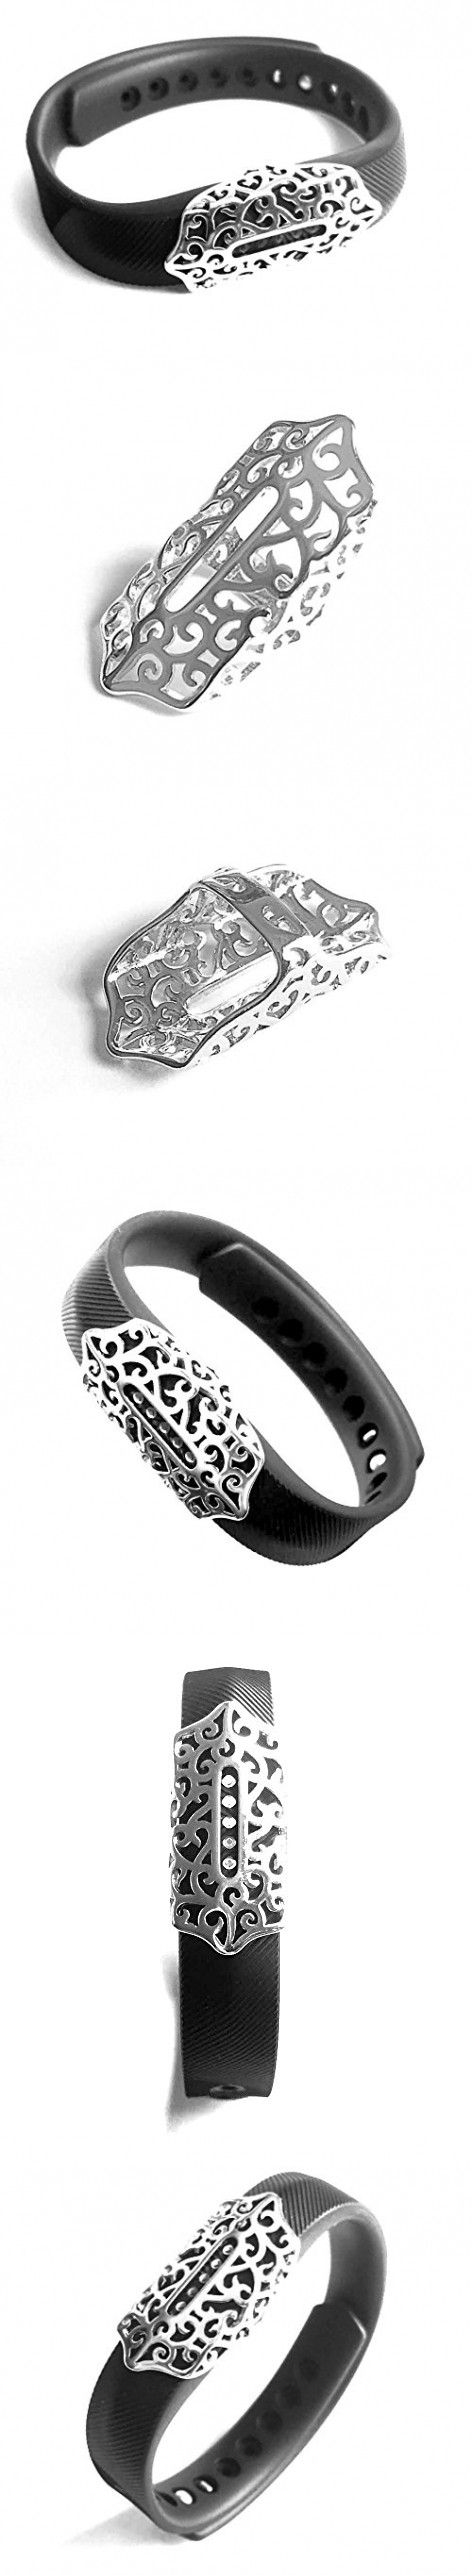 BSI Elegant Silver Metal Ornament Accessory Jewelry For Fitbit Flex 2 Fitness Activity Wristband